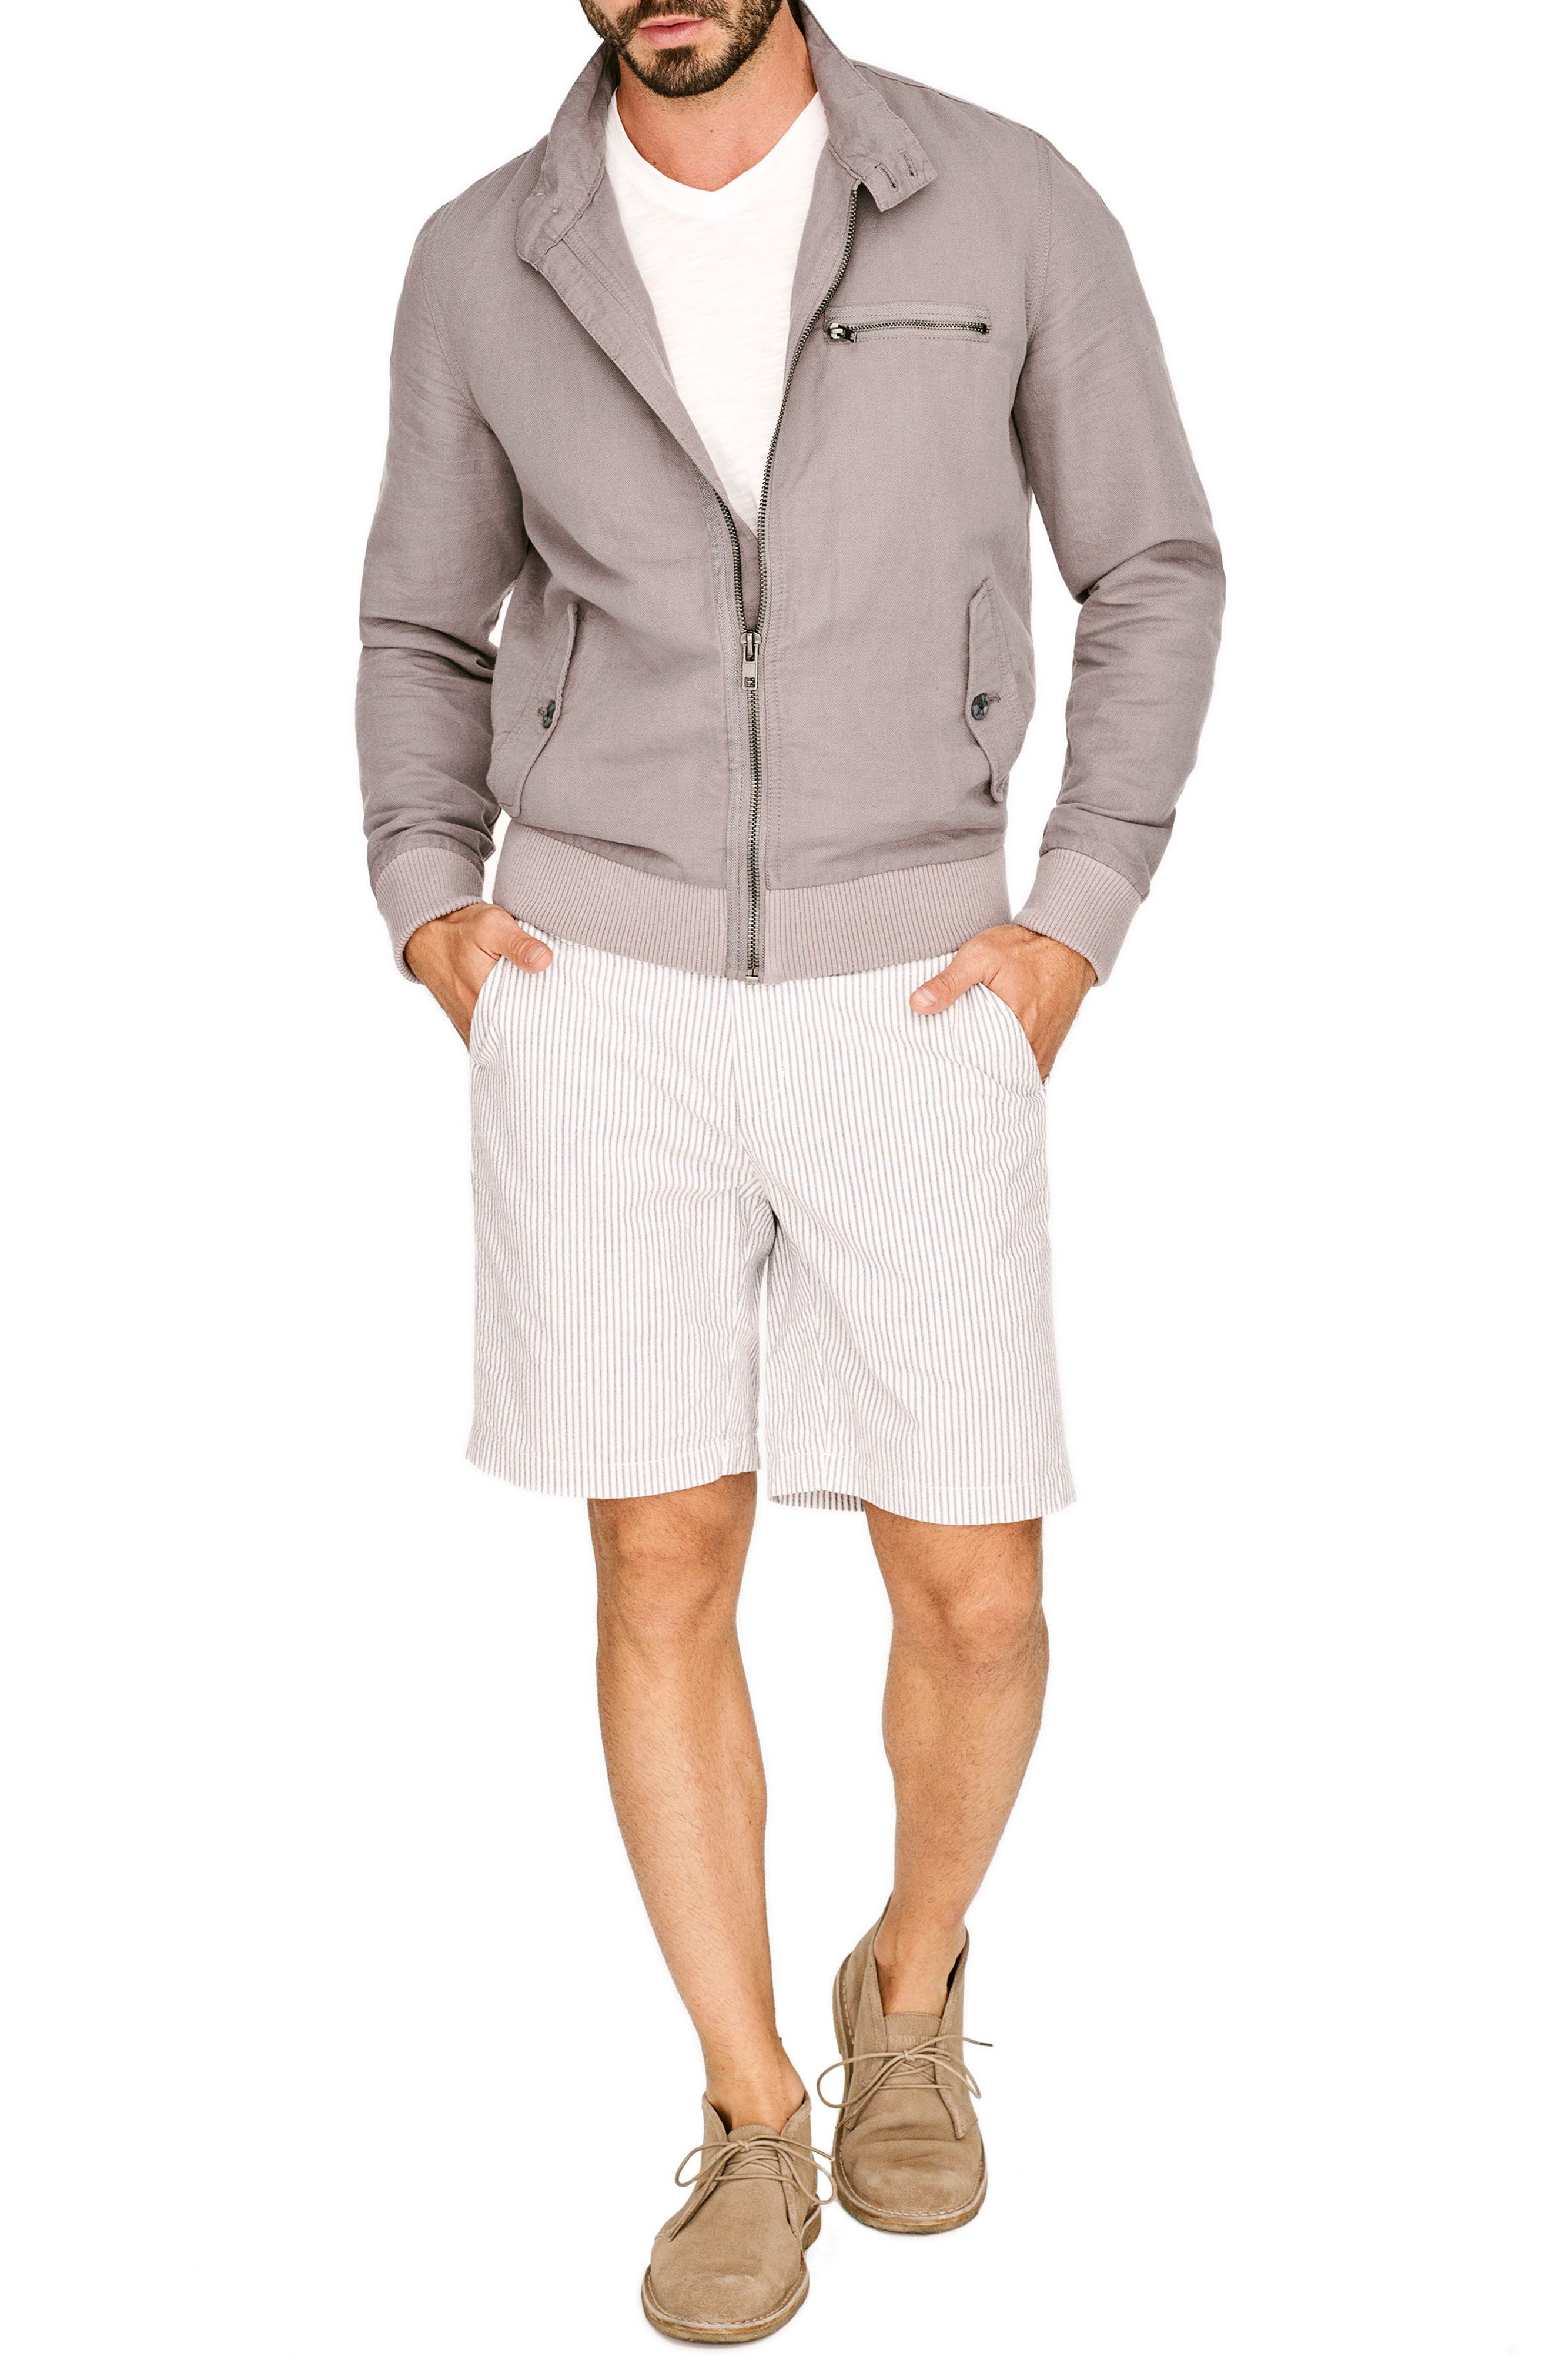 Harrington Linen & Cotton Jacket,                             Alternate thumbnail 7, color,                             Shade